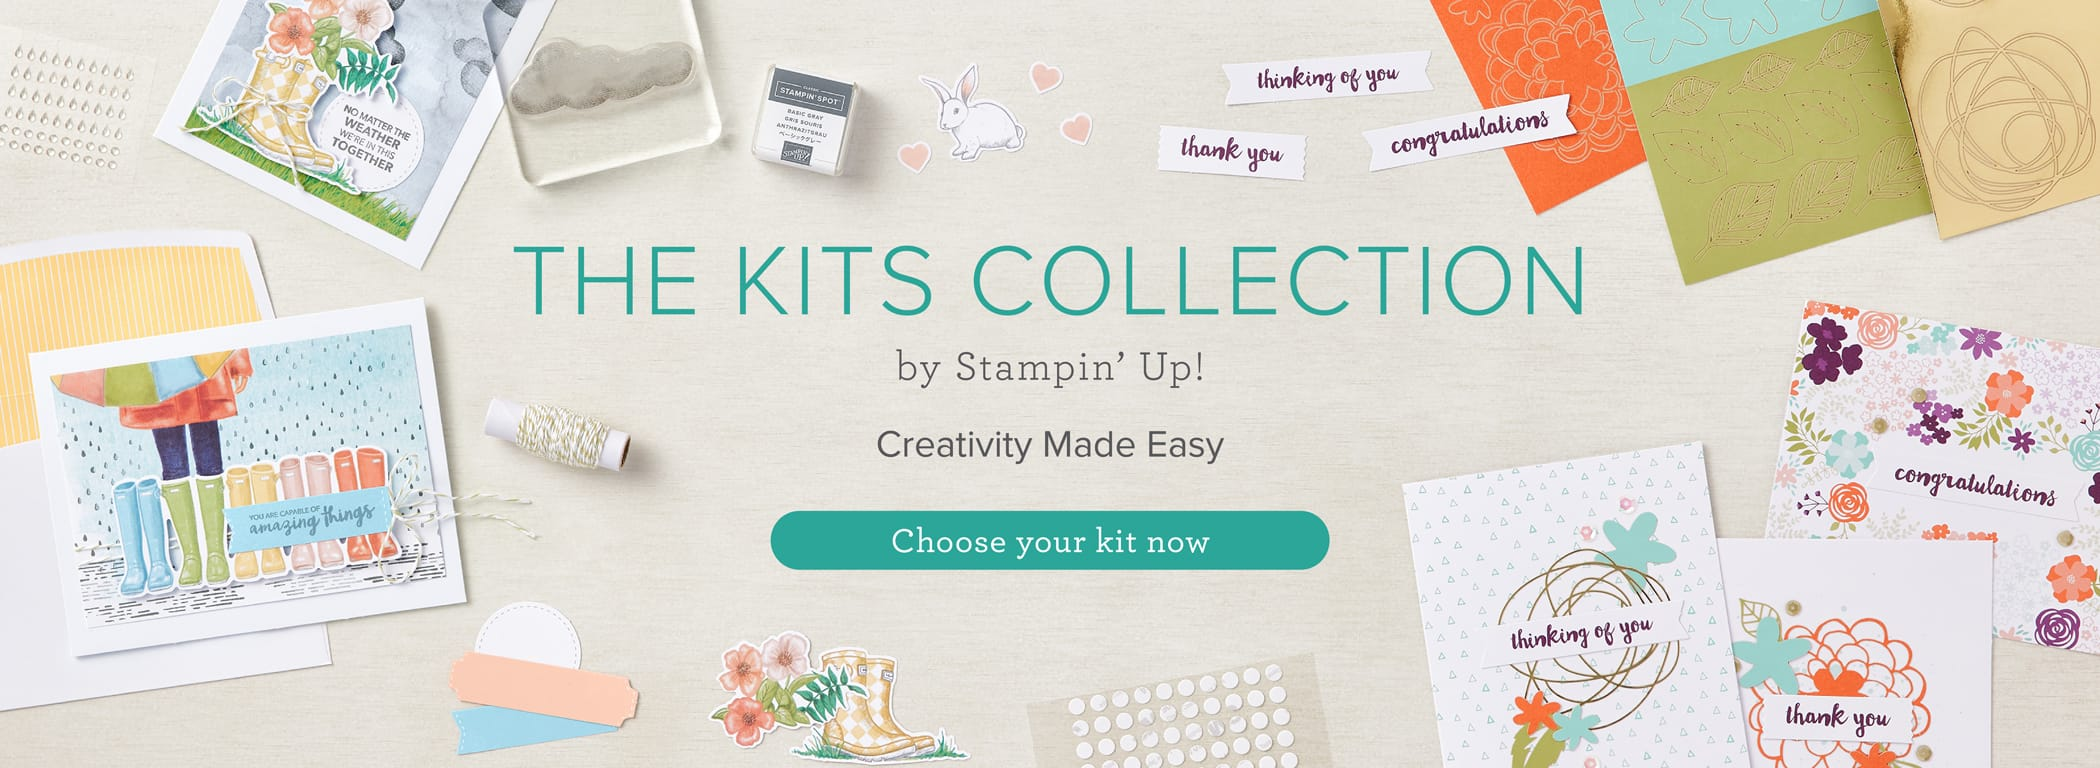 Kits Collection by Stampin up